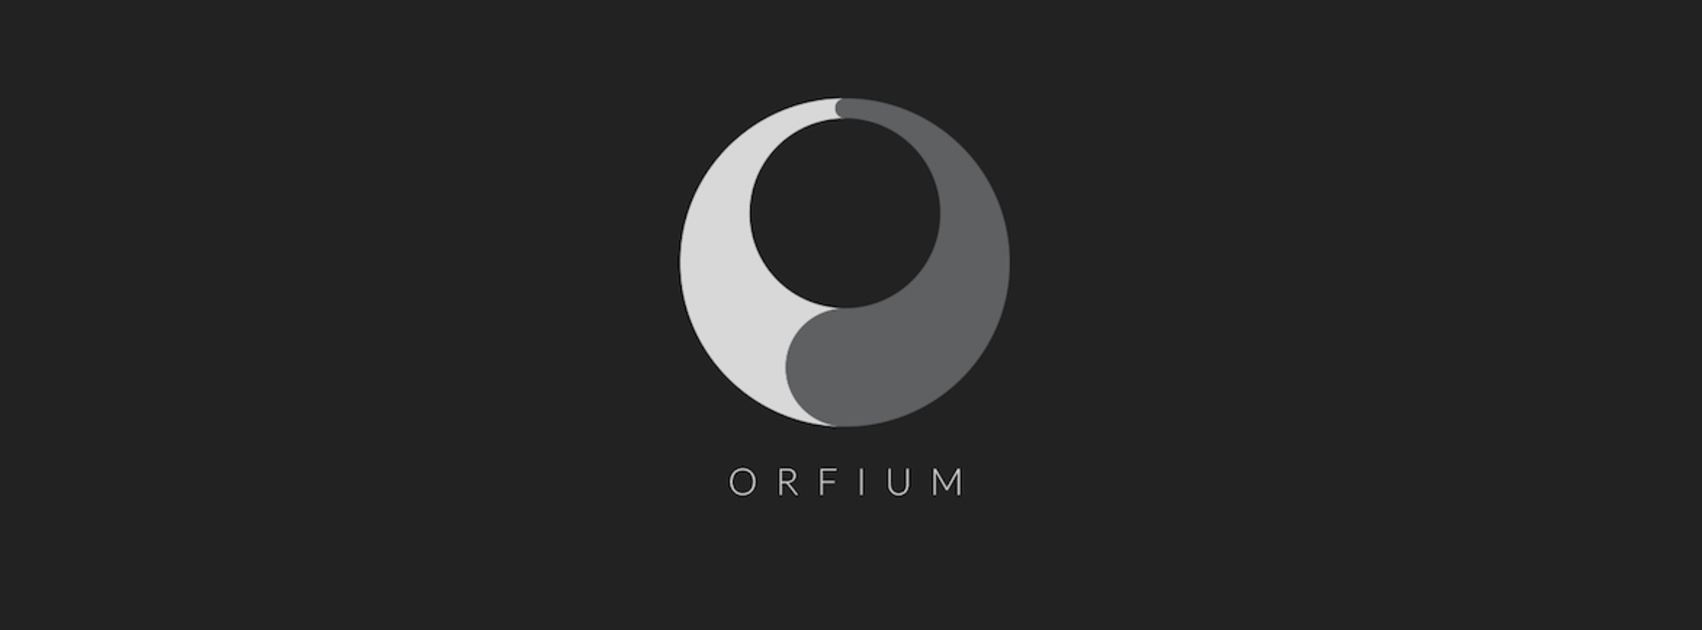 Orfium – der neue SoundCloud-Killer?